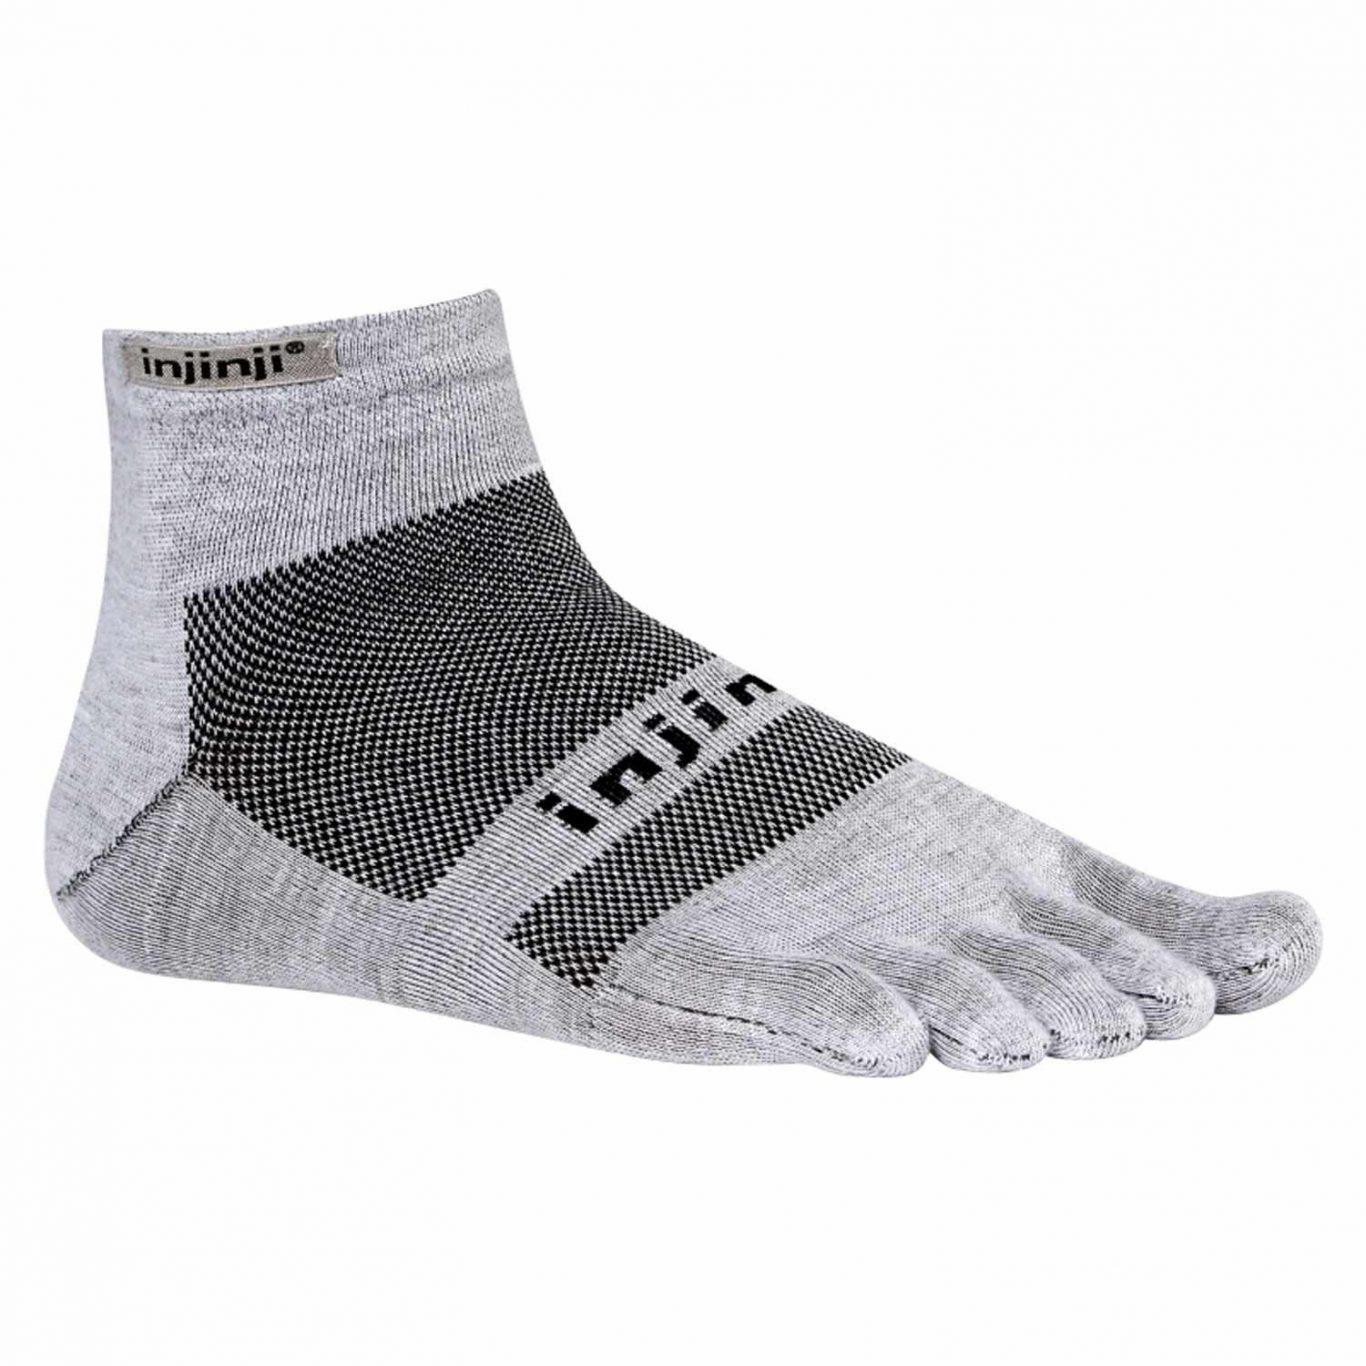 Zehensocken - Injinji Run 2.0 Mini-Crew